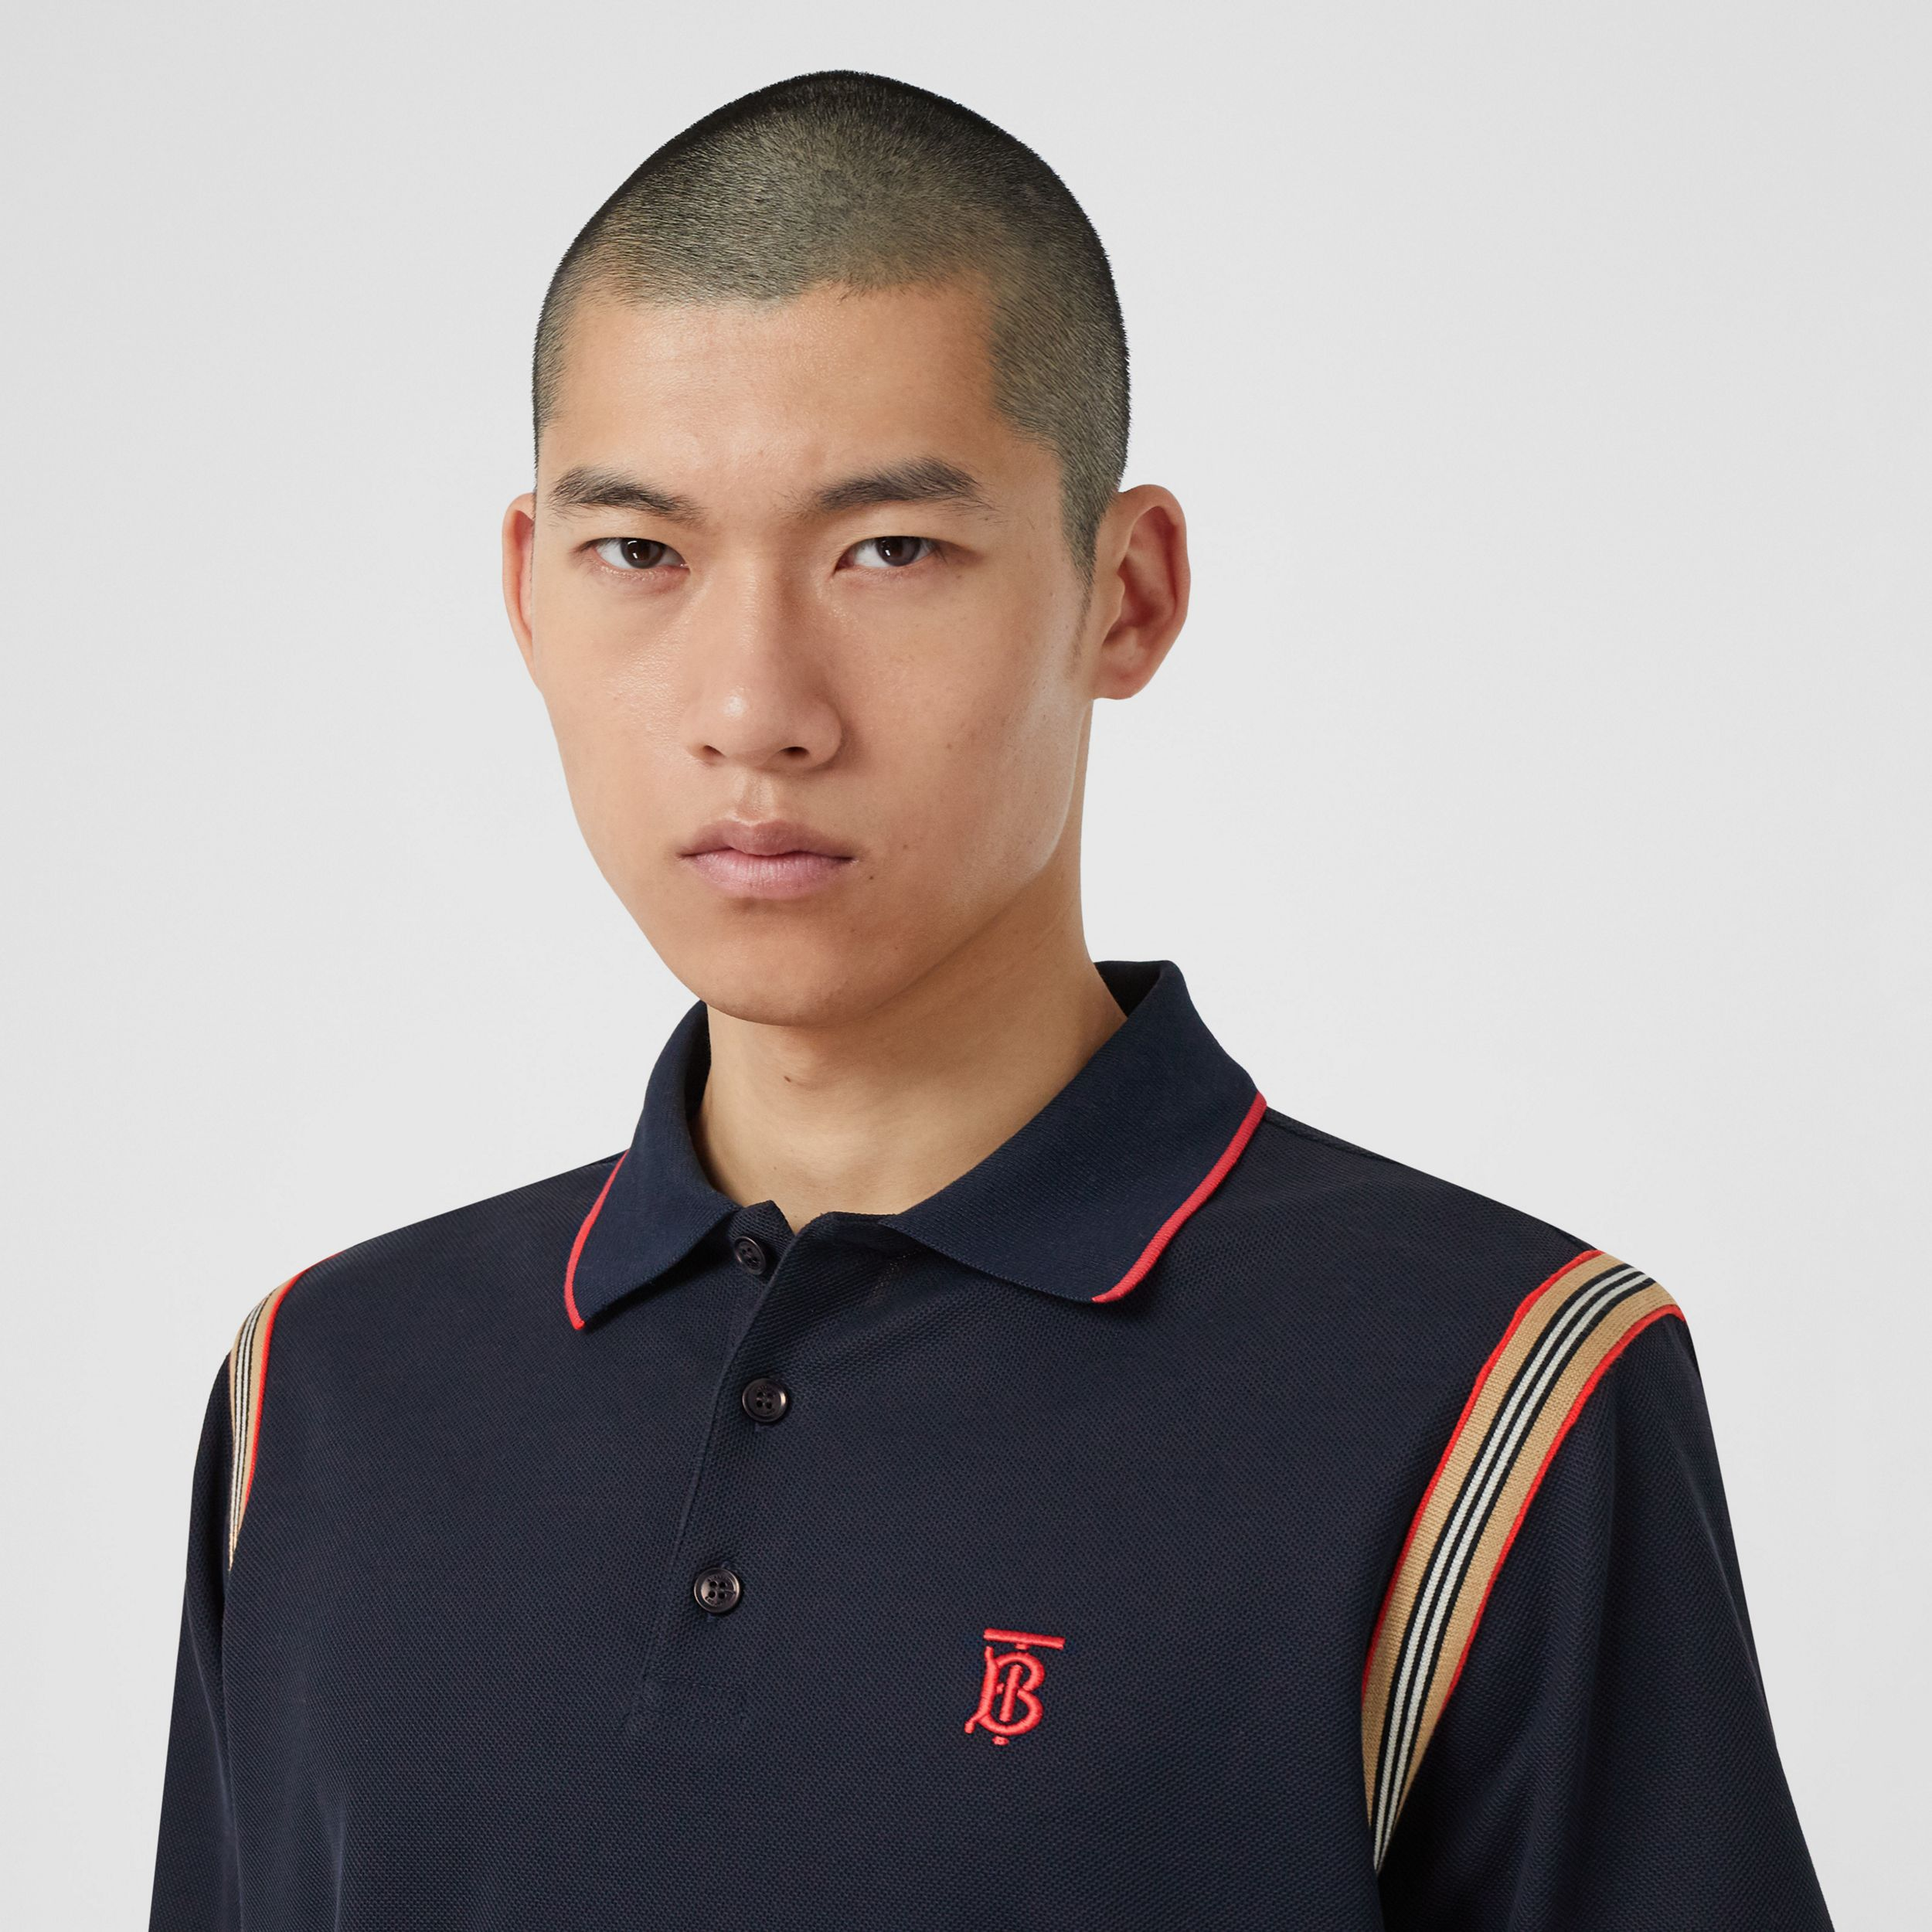 Icon Stripe Trim Monogram Motif Cotton Polo Shirt in Navy - Men | Burberry Australia - 2